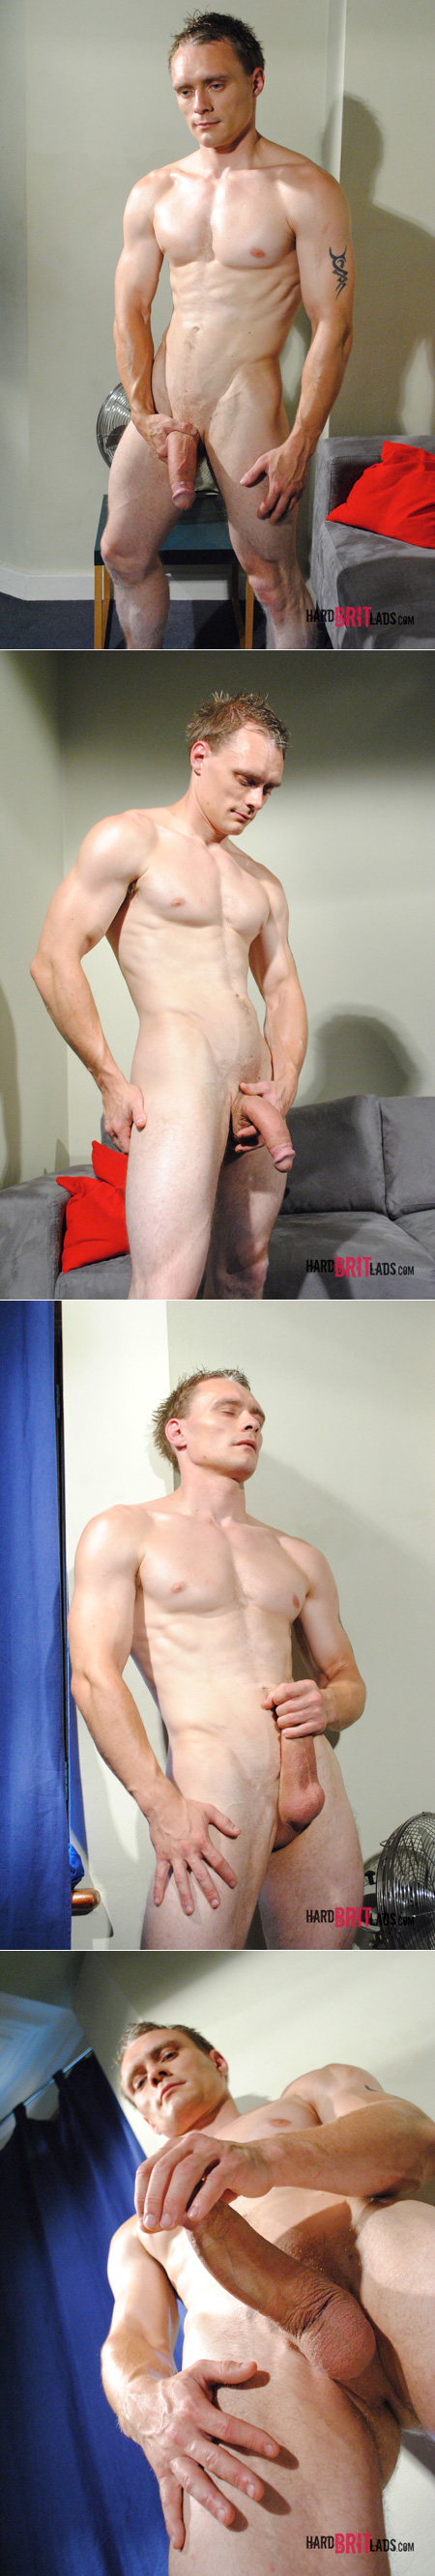 Ripped, muscular stud stroking his enormous white monster cock.